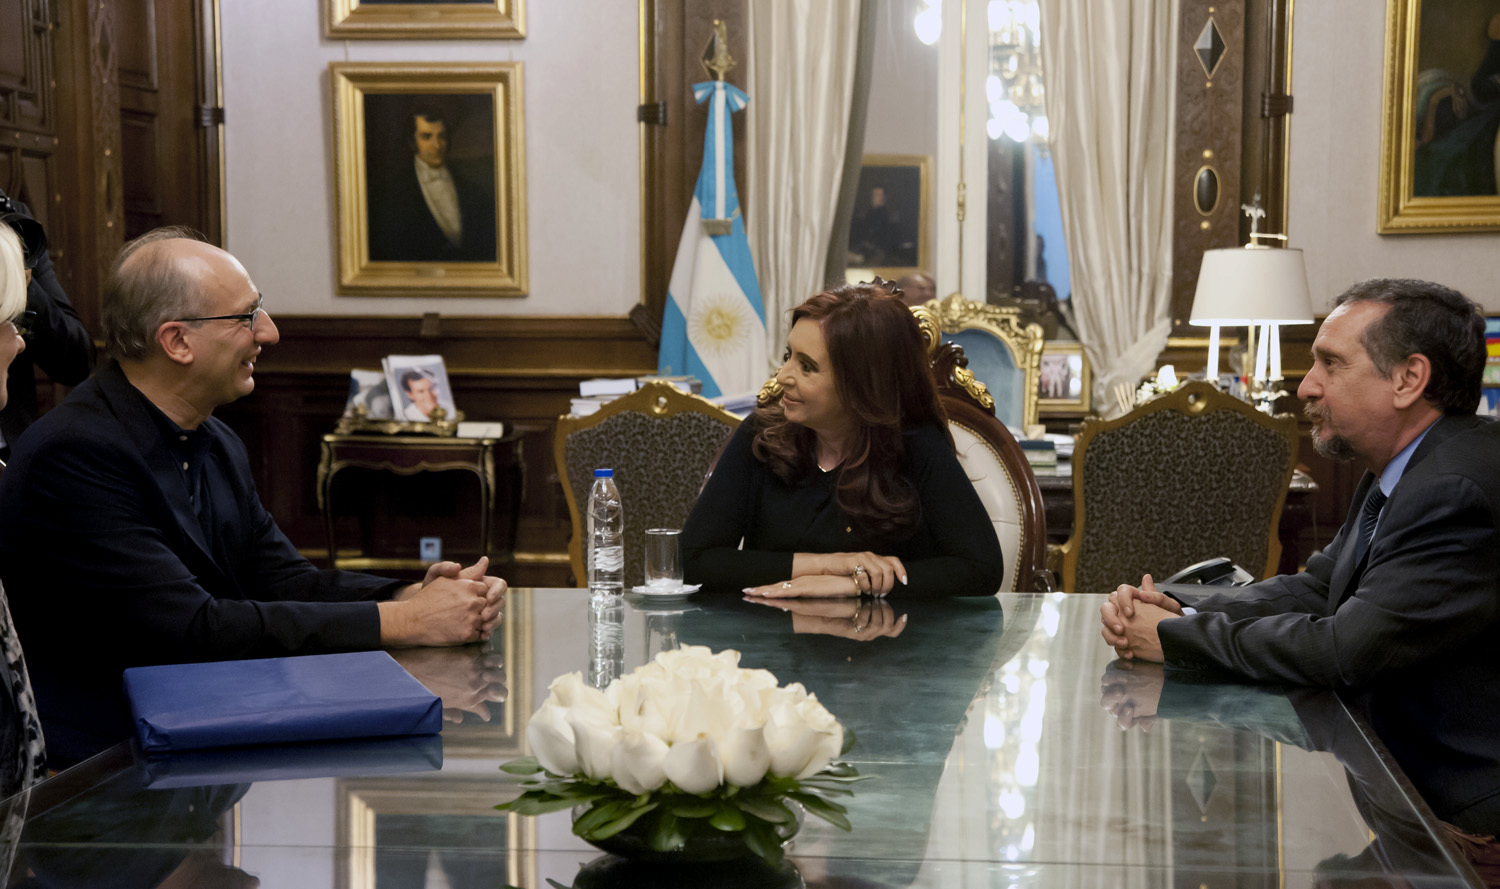 The President inaugurated a new infrastructure for two scientific research institutes in Santa Fe